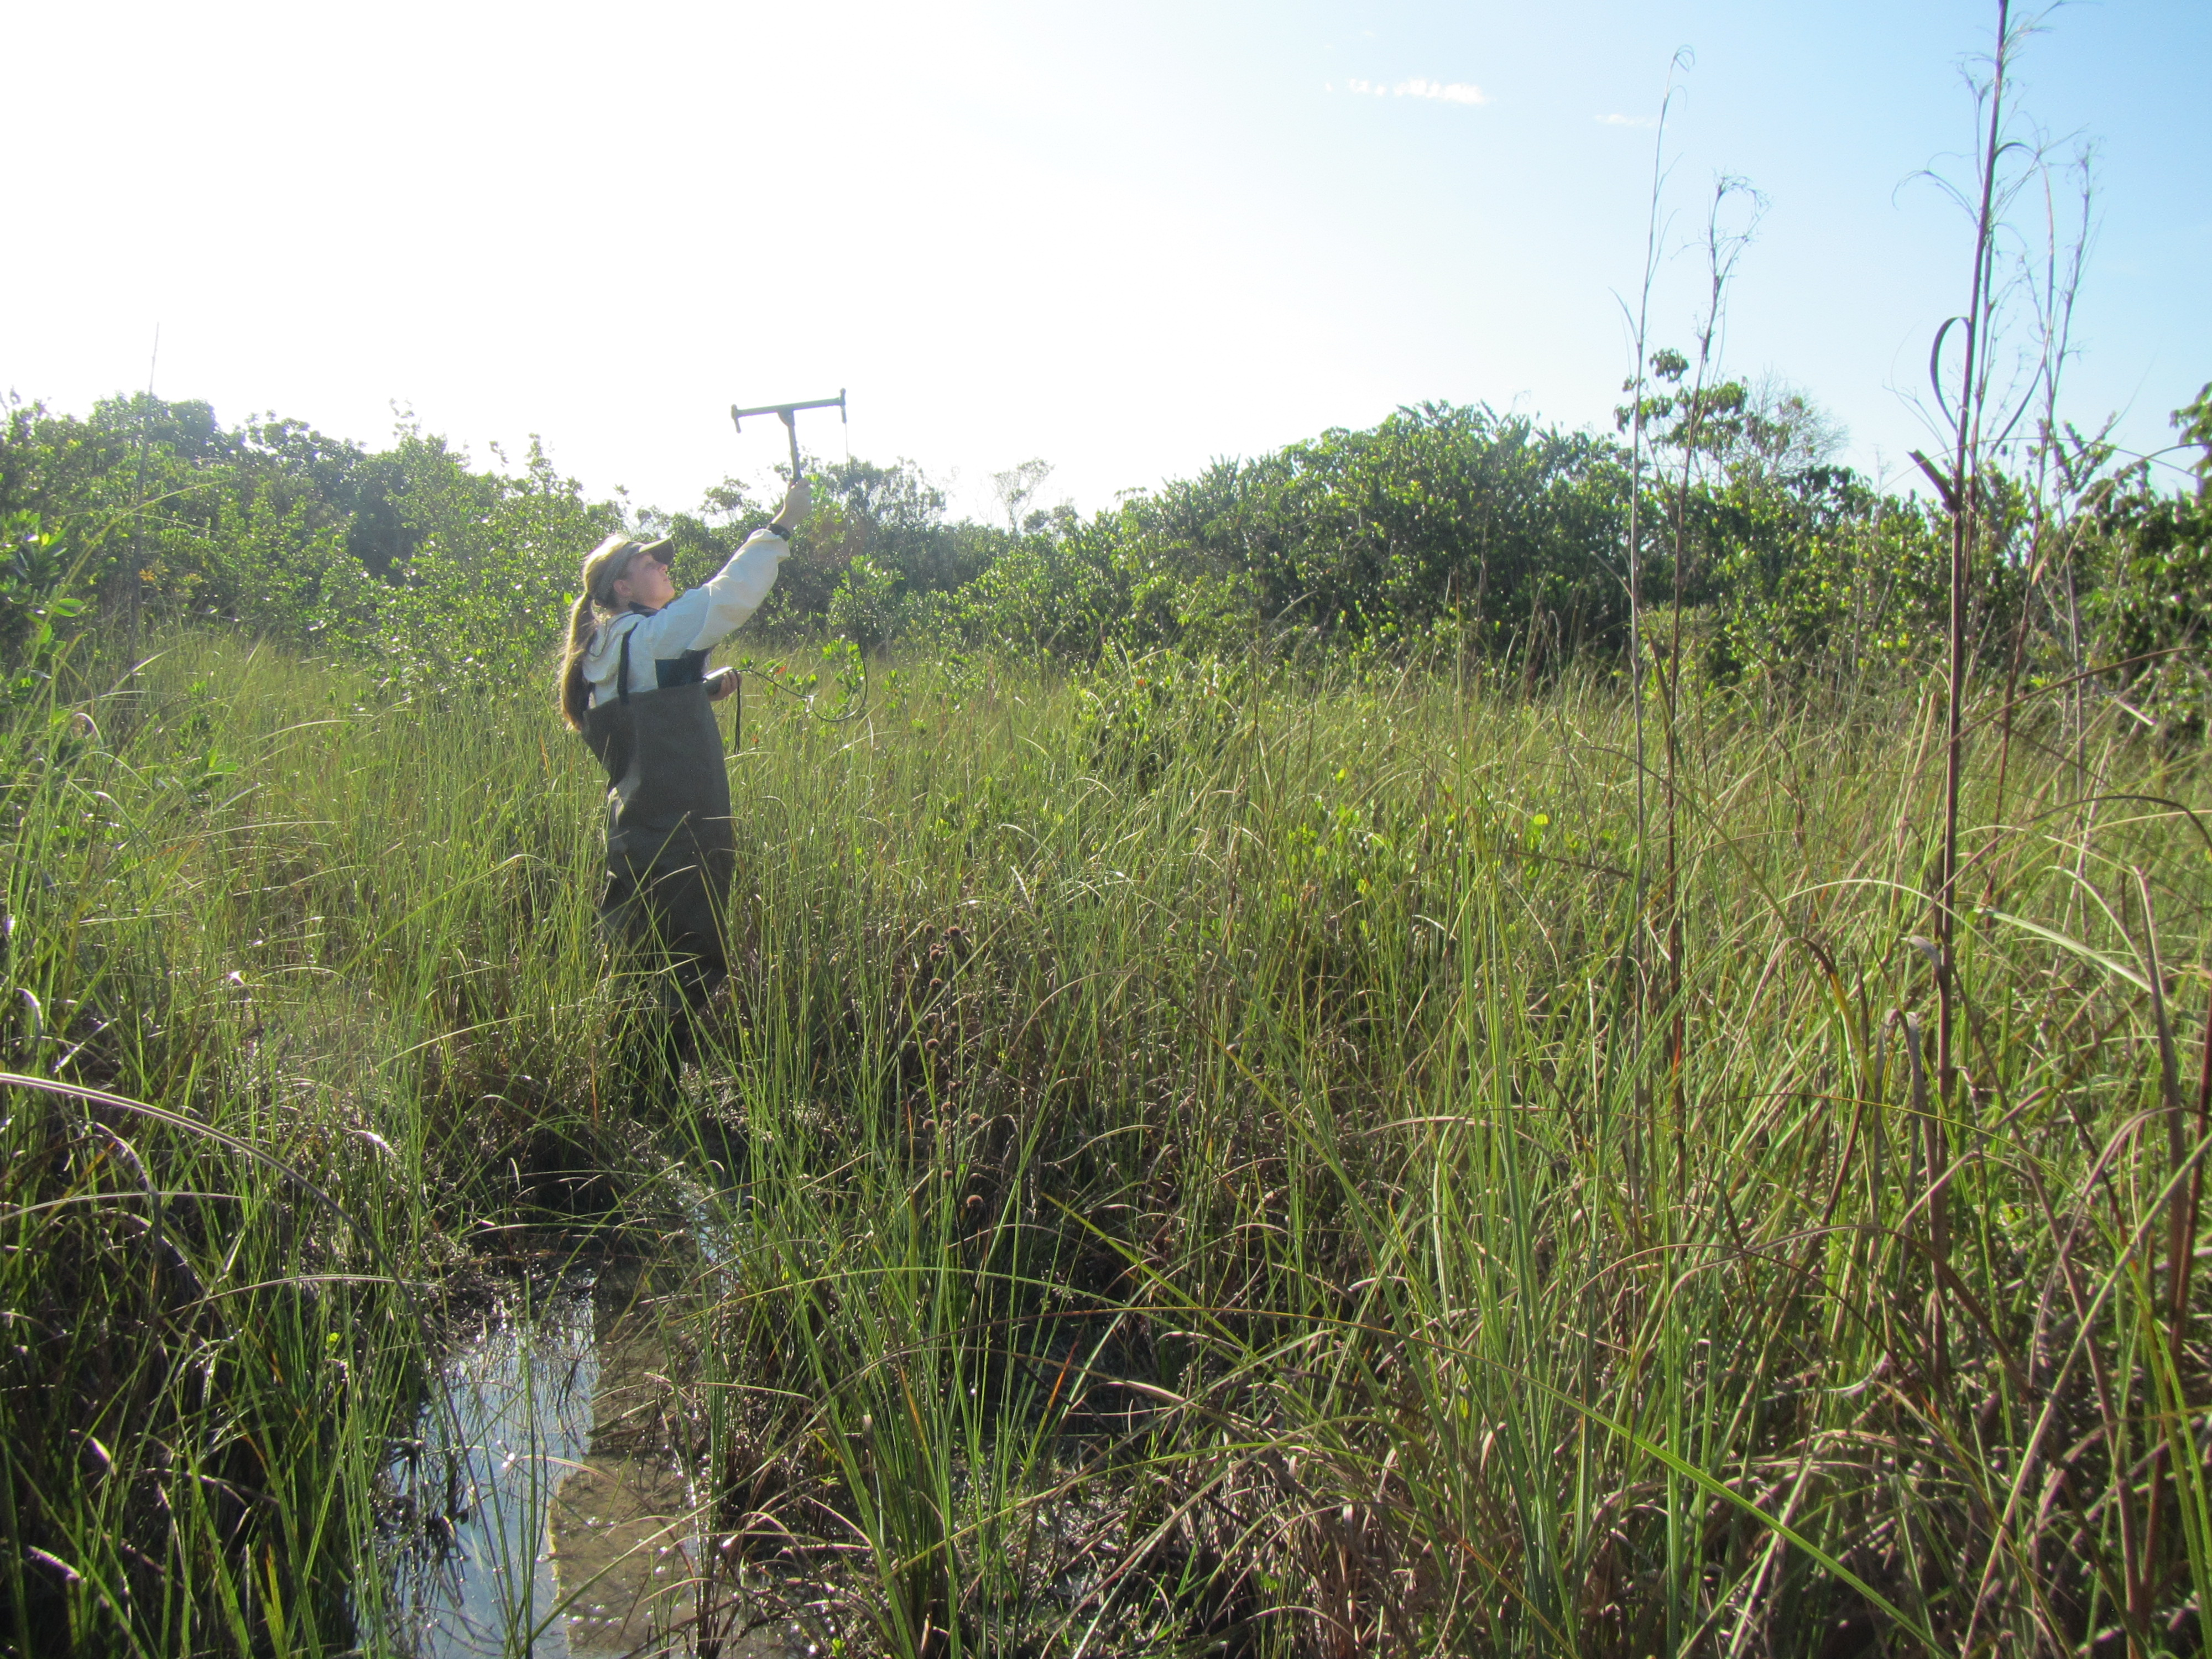 USGS scientinst conducts radio telemetry on Argentine black-and-white tegus in the Florida Everglades.